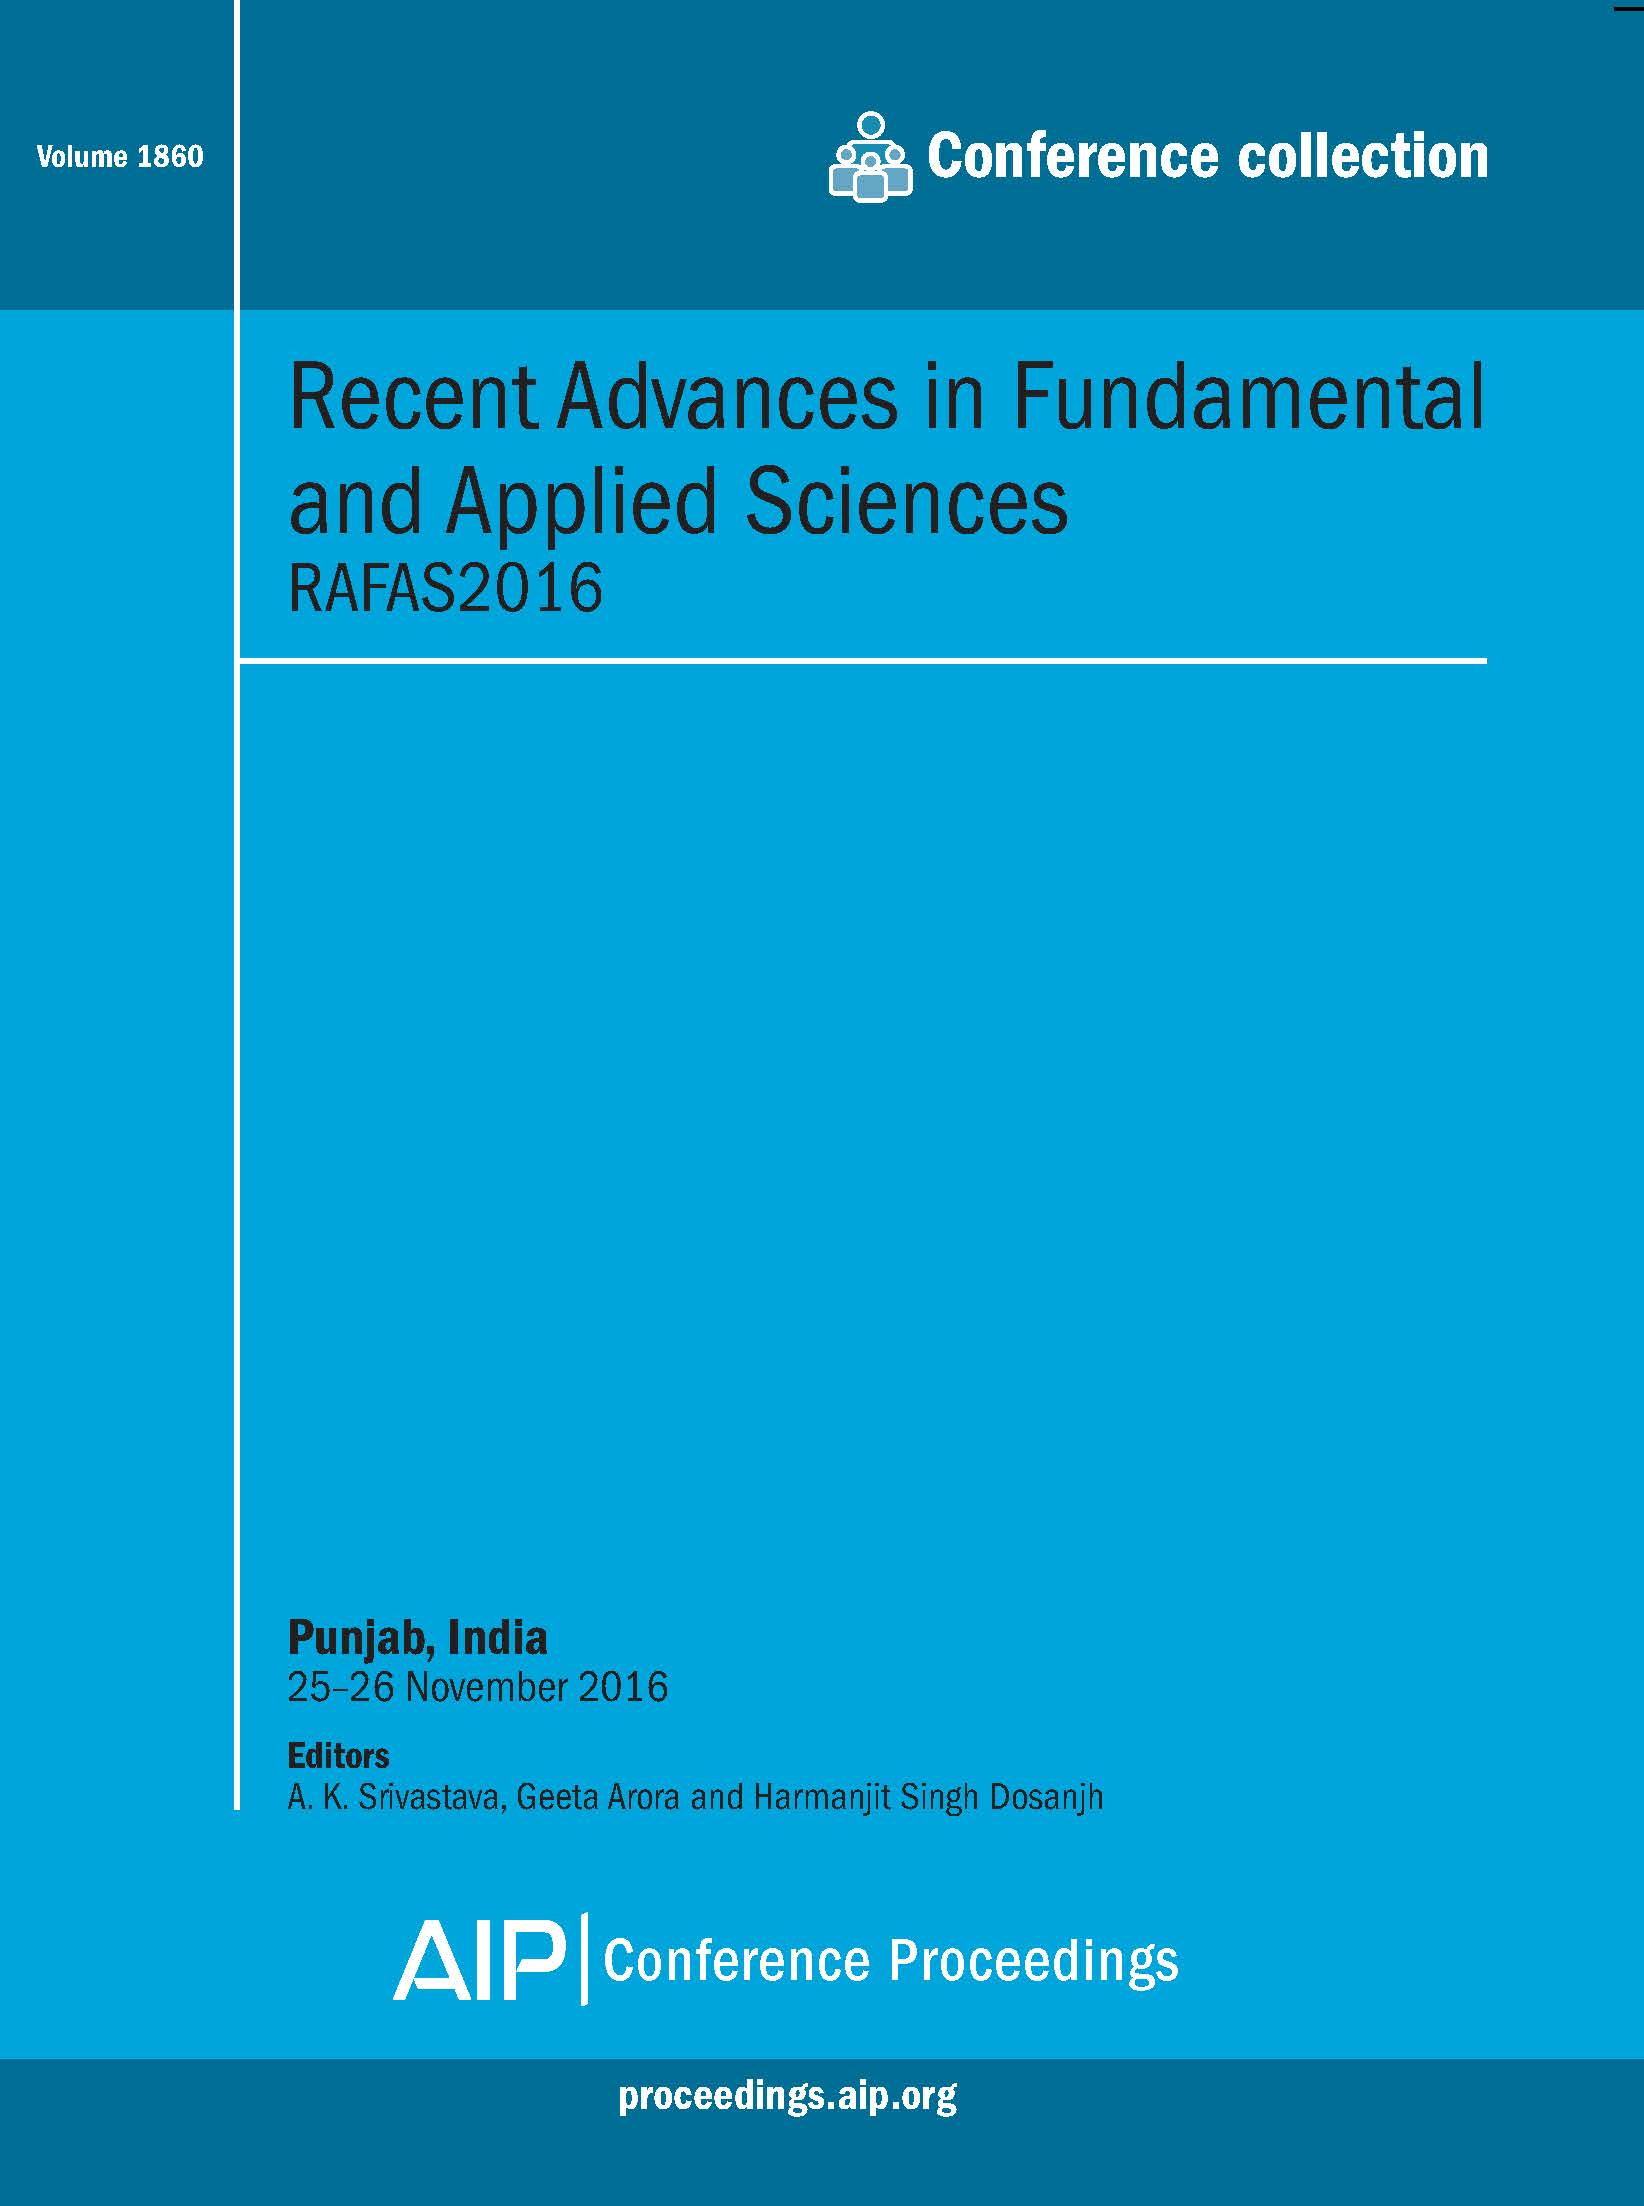 Volume 1860: Recent Advances in Fundamental and Applied